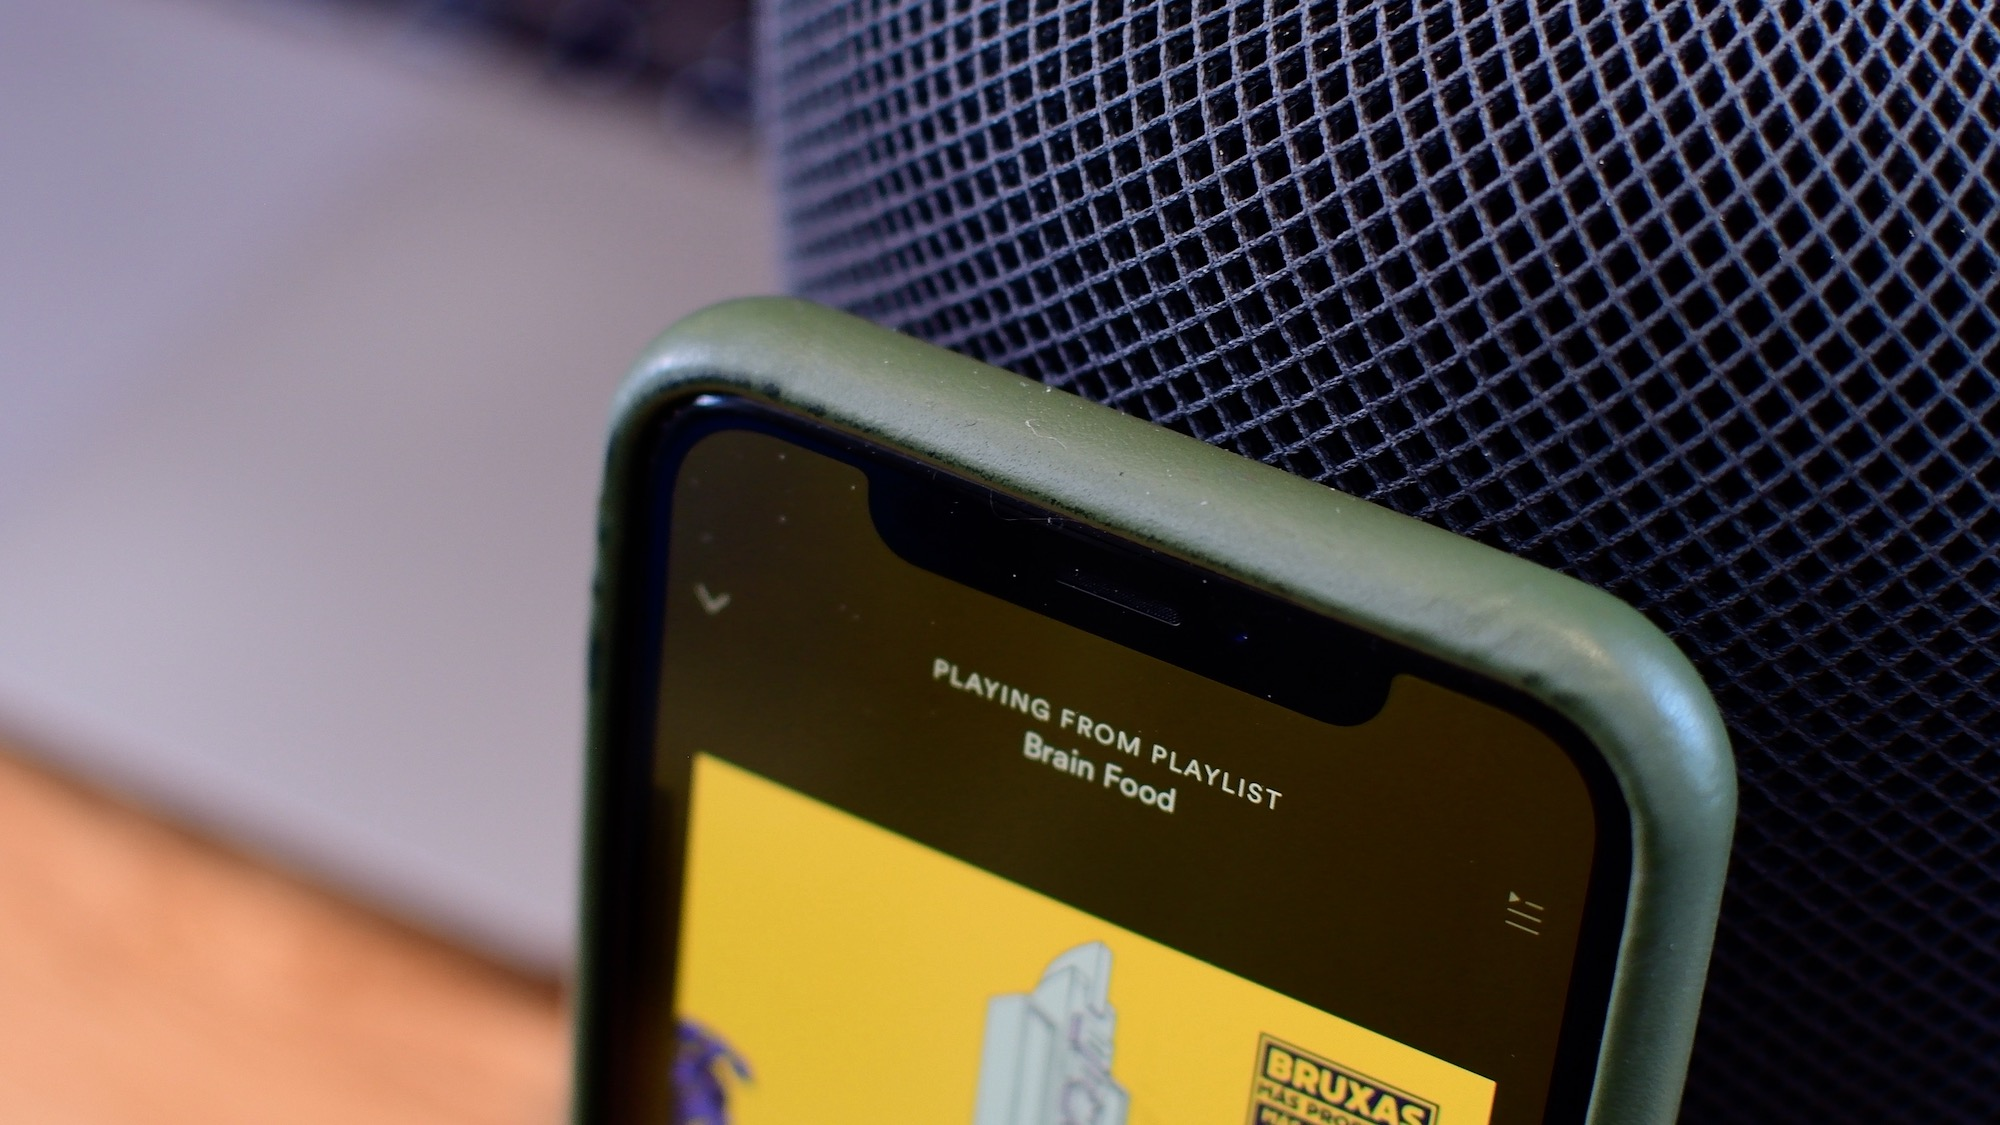 how to play spotify on homepod